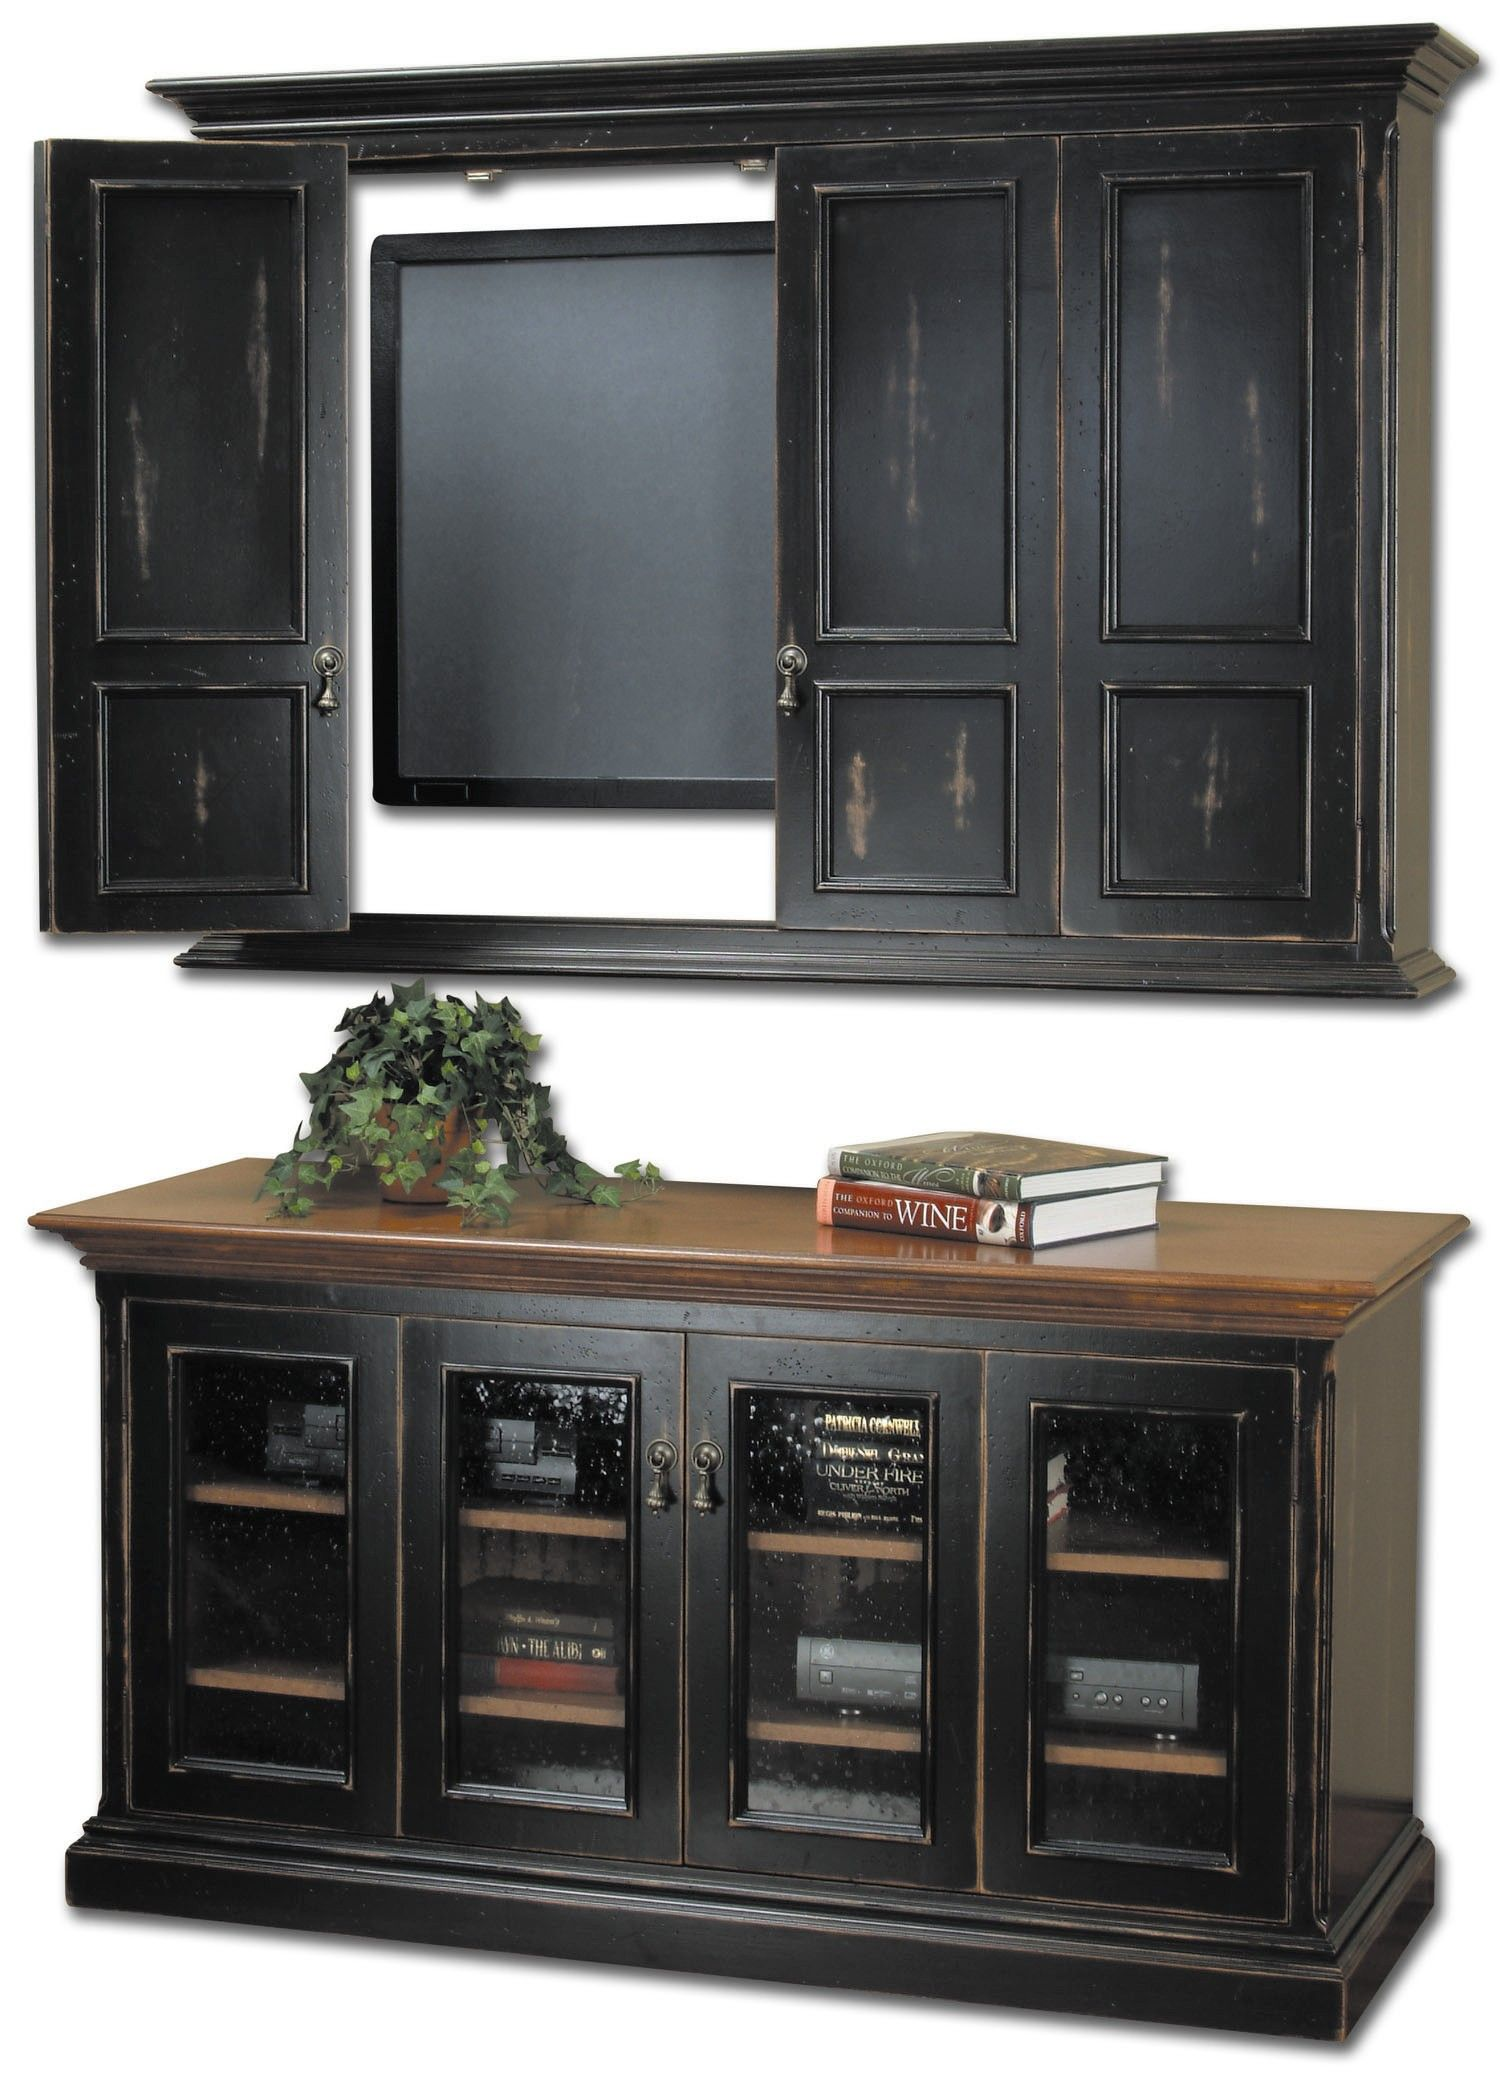 Country classics painted furniture hillsboro flat screen tv wall cabinet